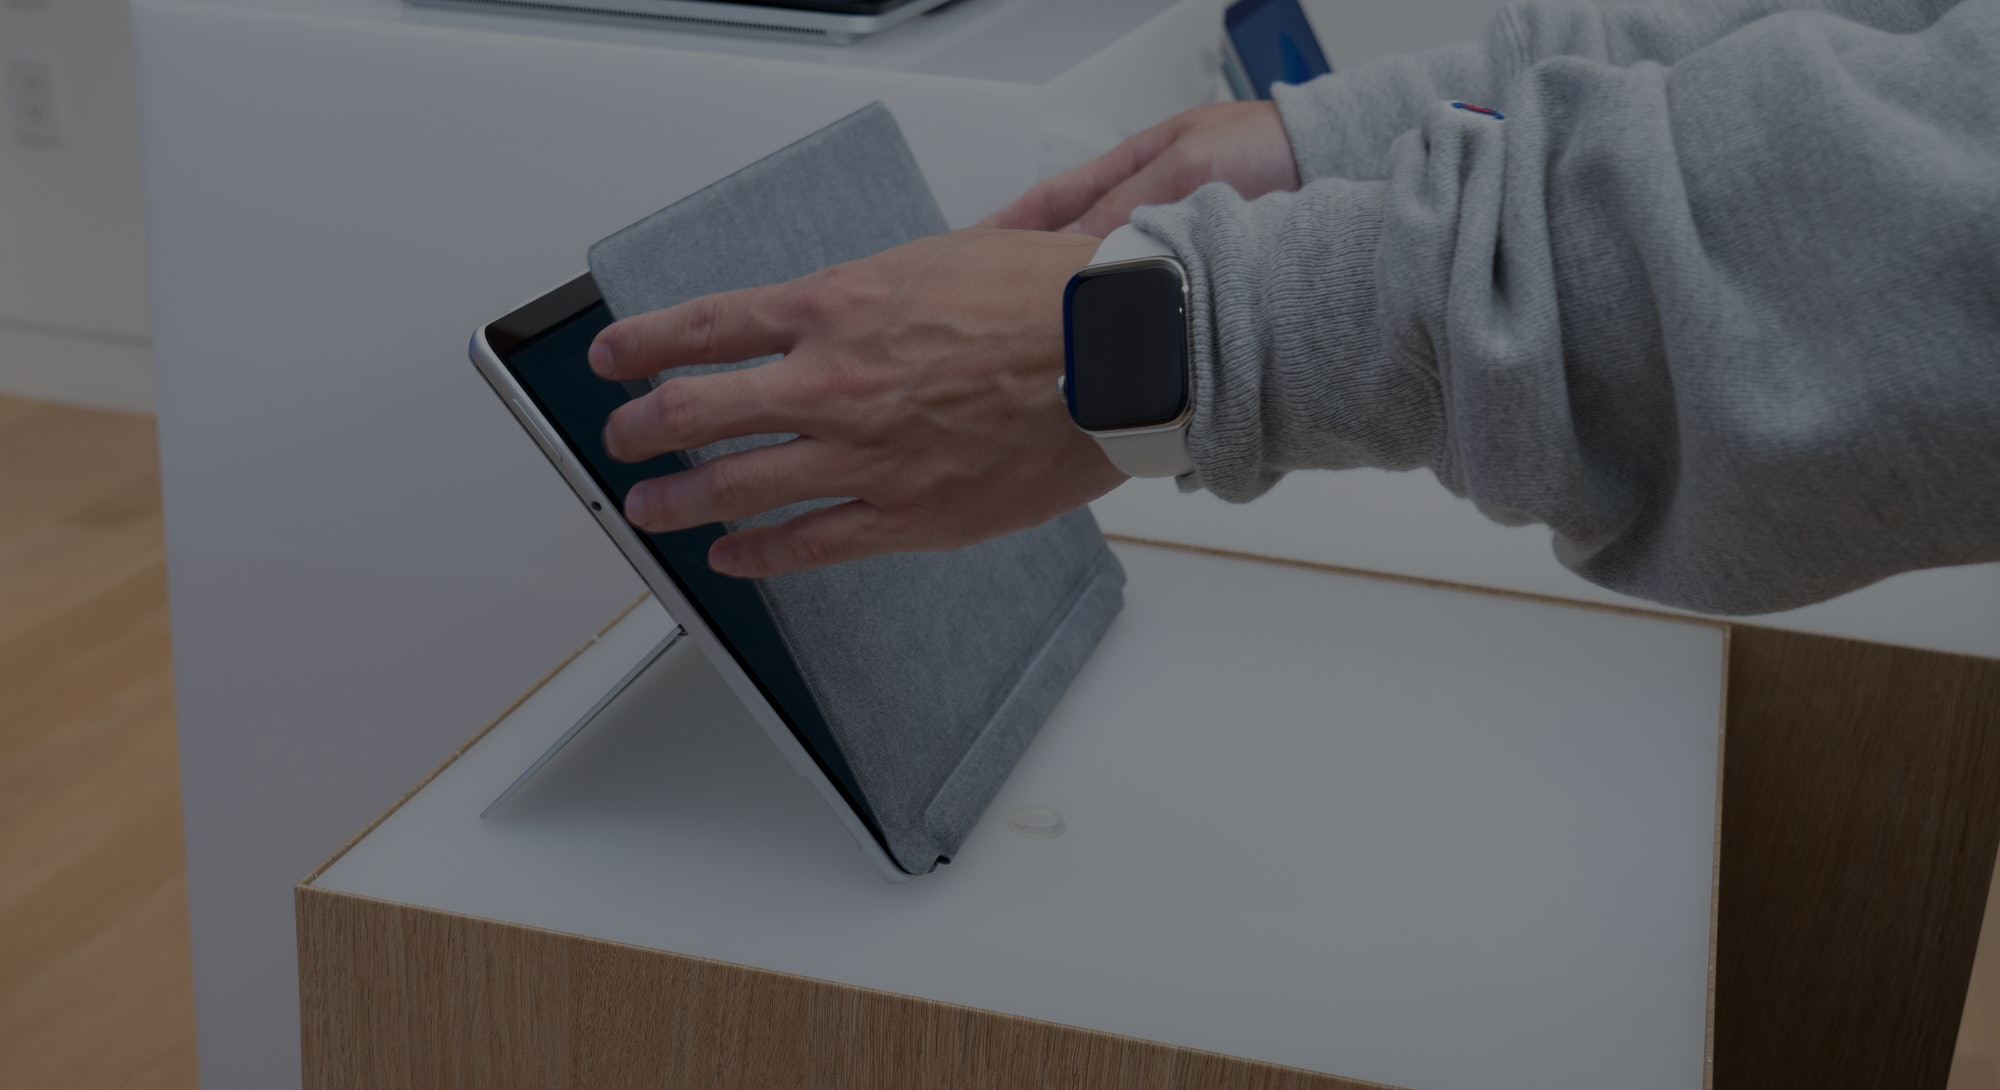 An image of the Microsoft Surface Pro 8 tablet